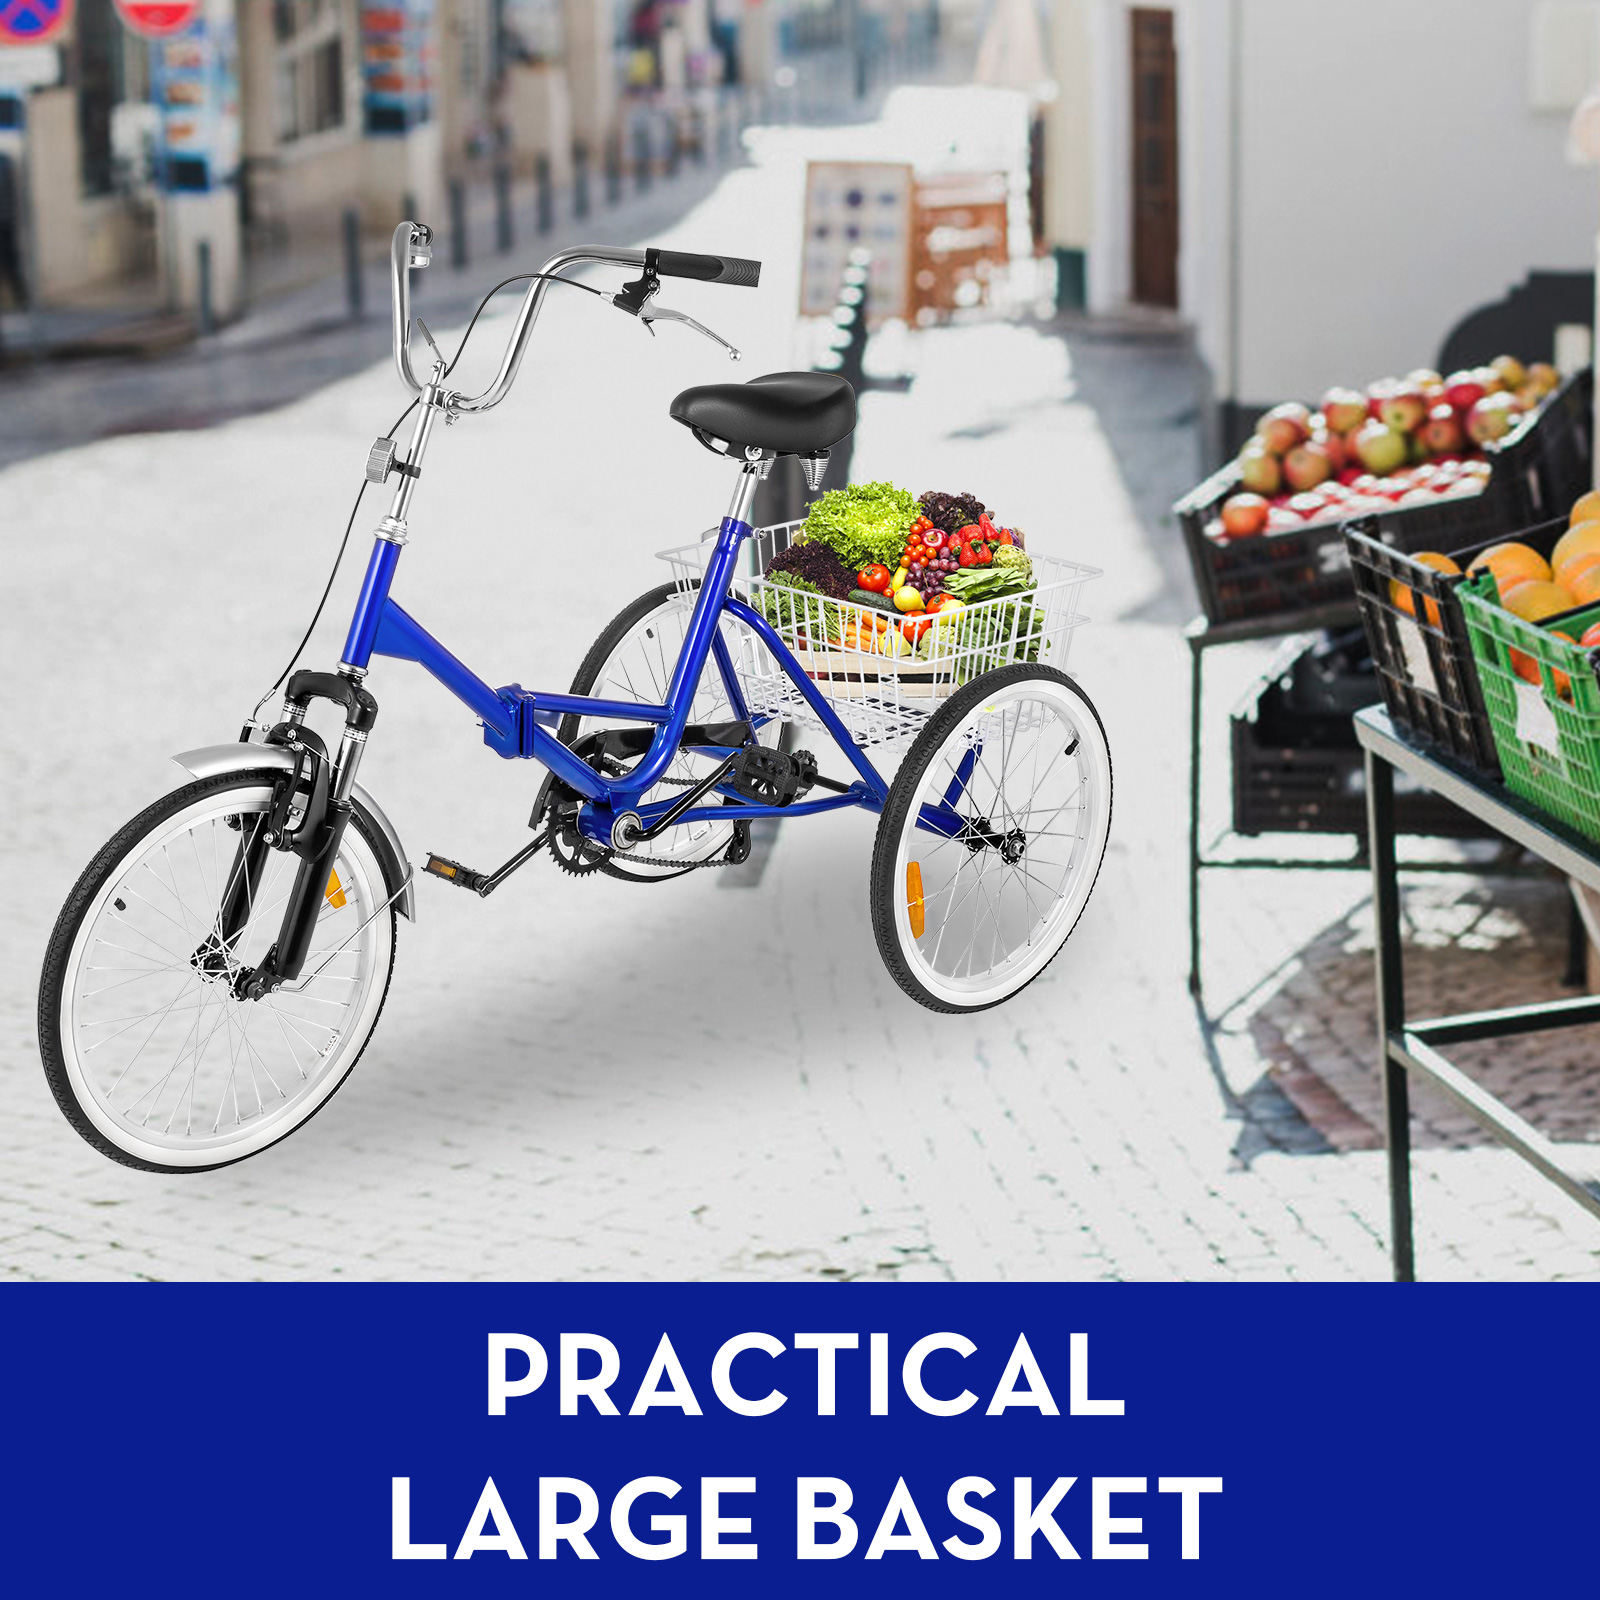 20-24-26-034-Adult-Tricycle-1-7-Speed-3-Wheel-Large-Basket-For-Shopping-Optional thumbnail 55